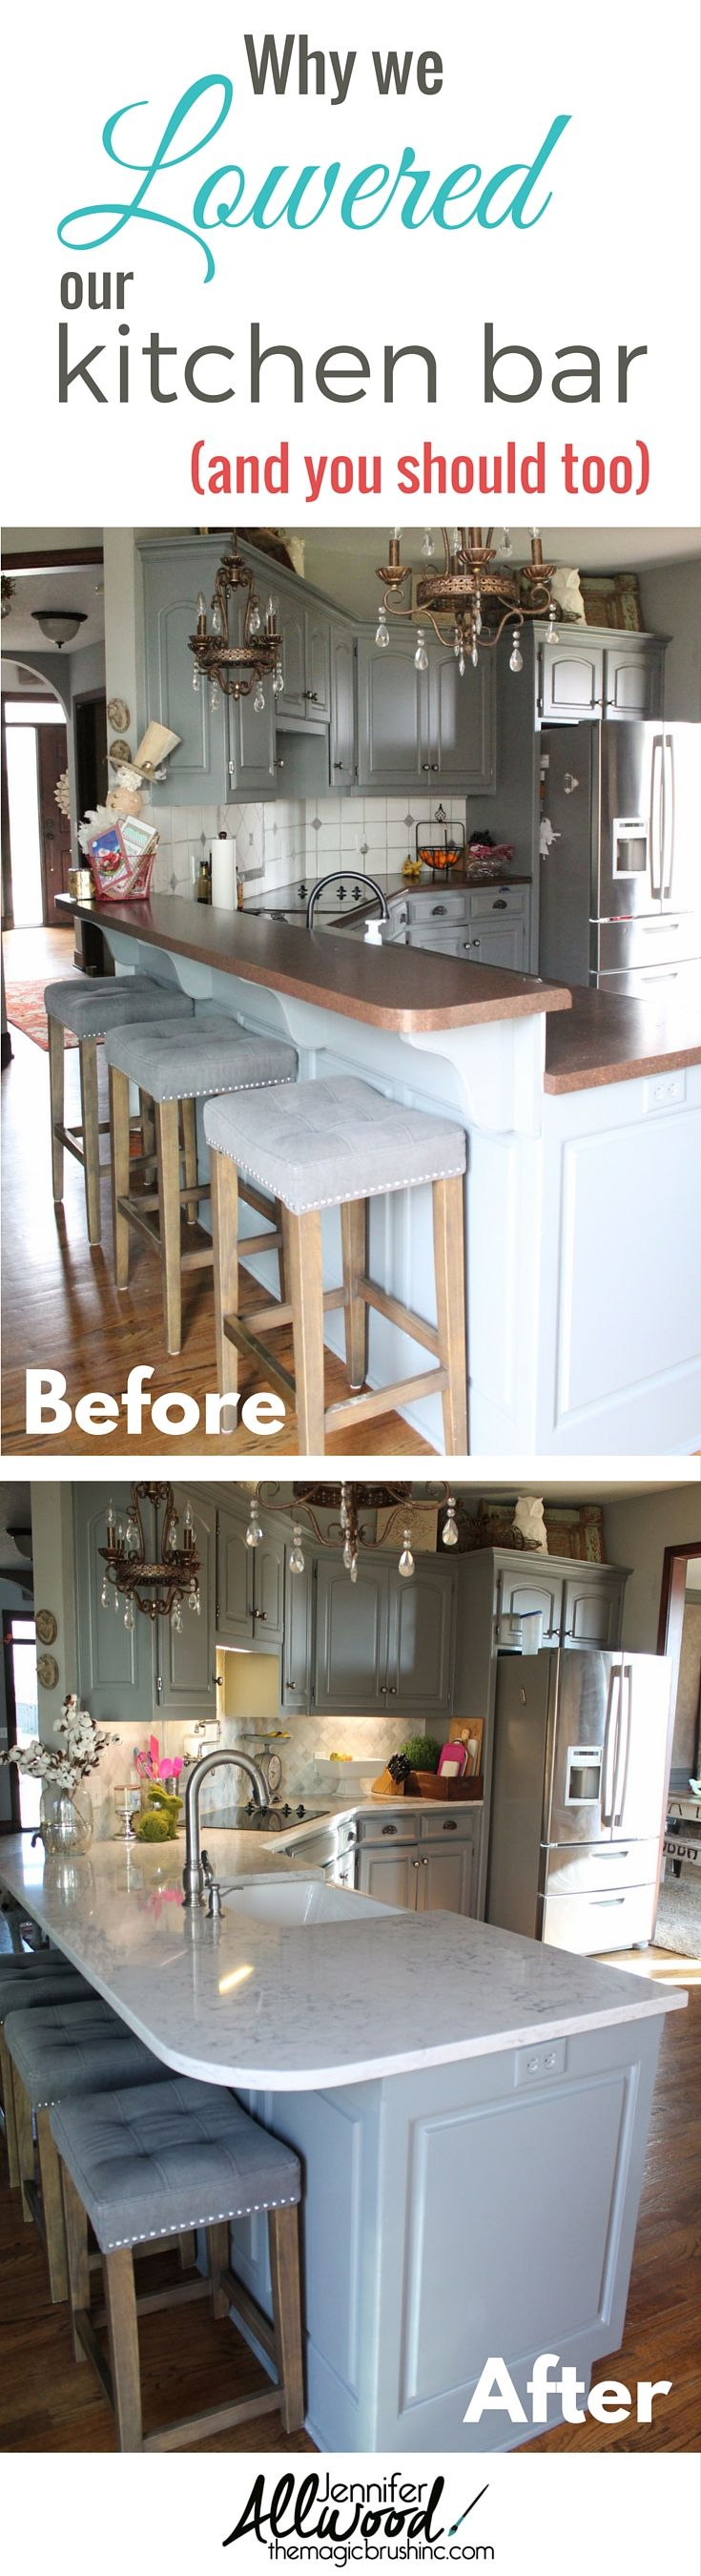 Pin It: Why We Lowered Our Kitchen Counter Bar